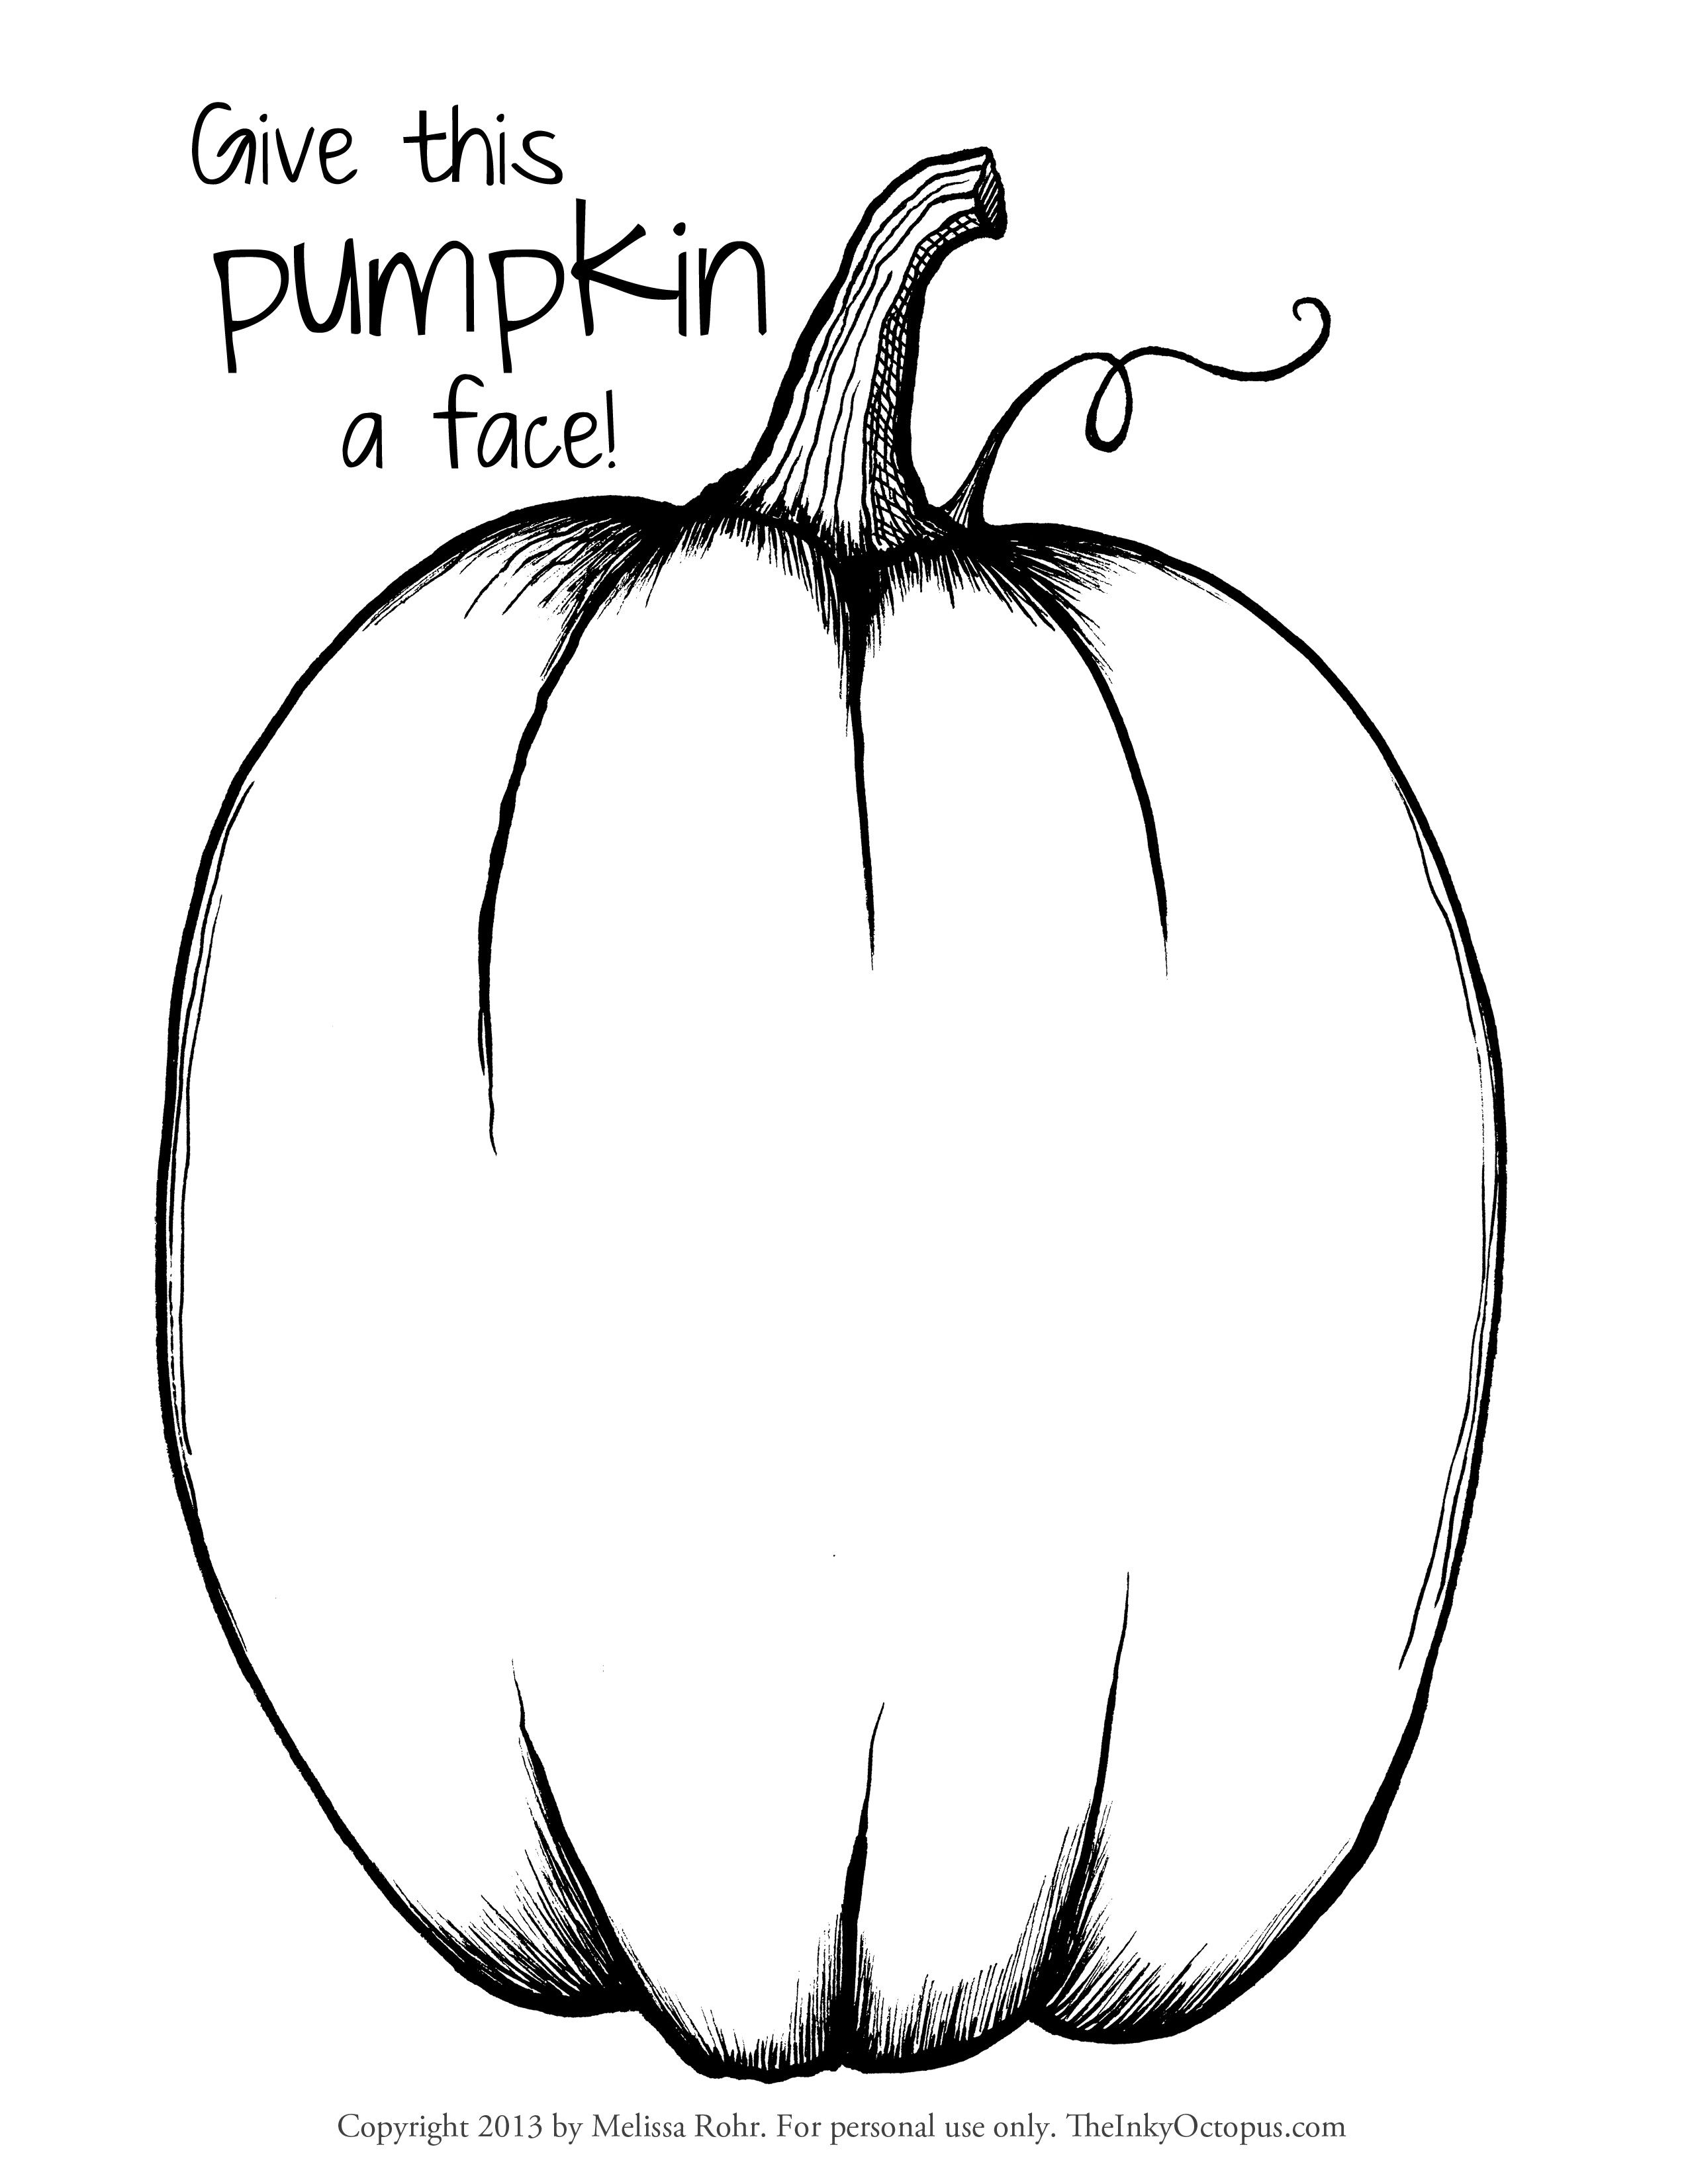 pumpkin coloring pages free printable learn and grow designs website how to draw a pumpkin pumpkin printable free coloring pages